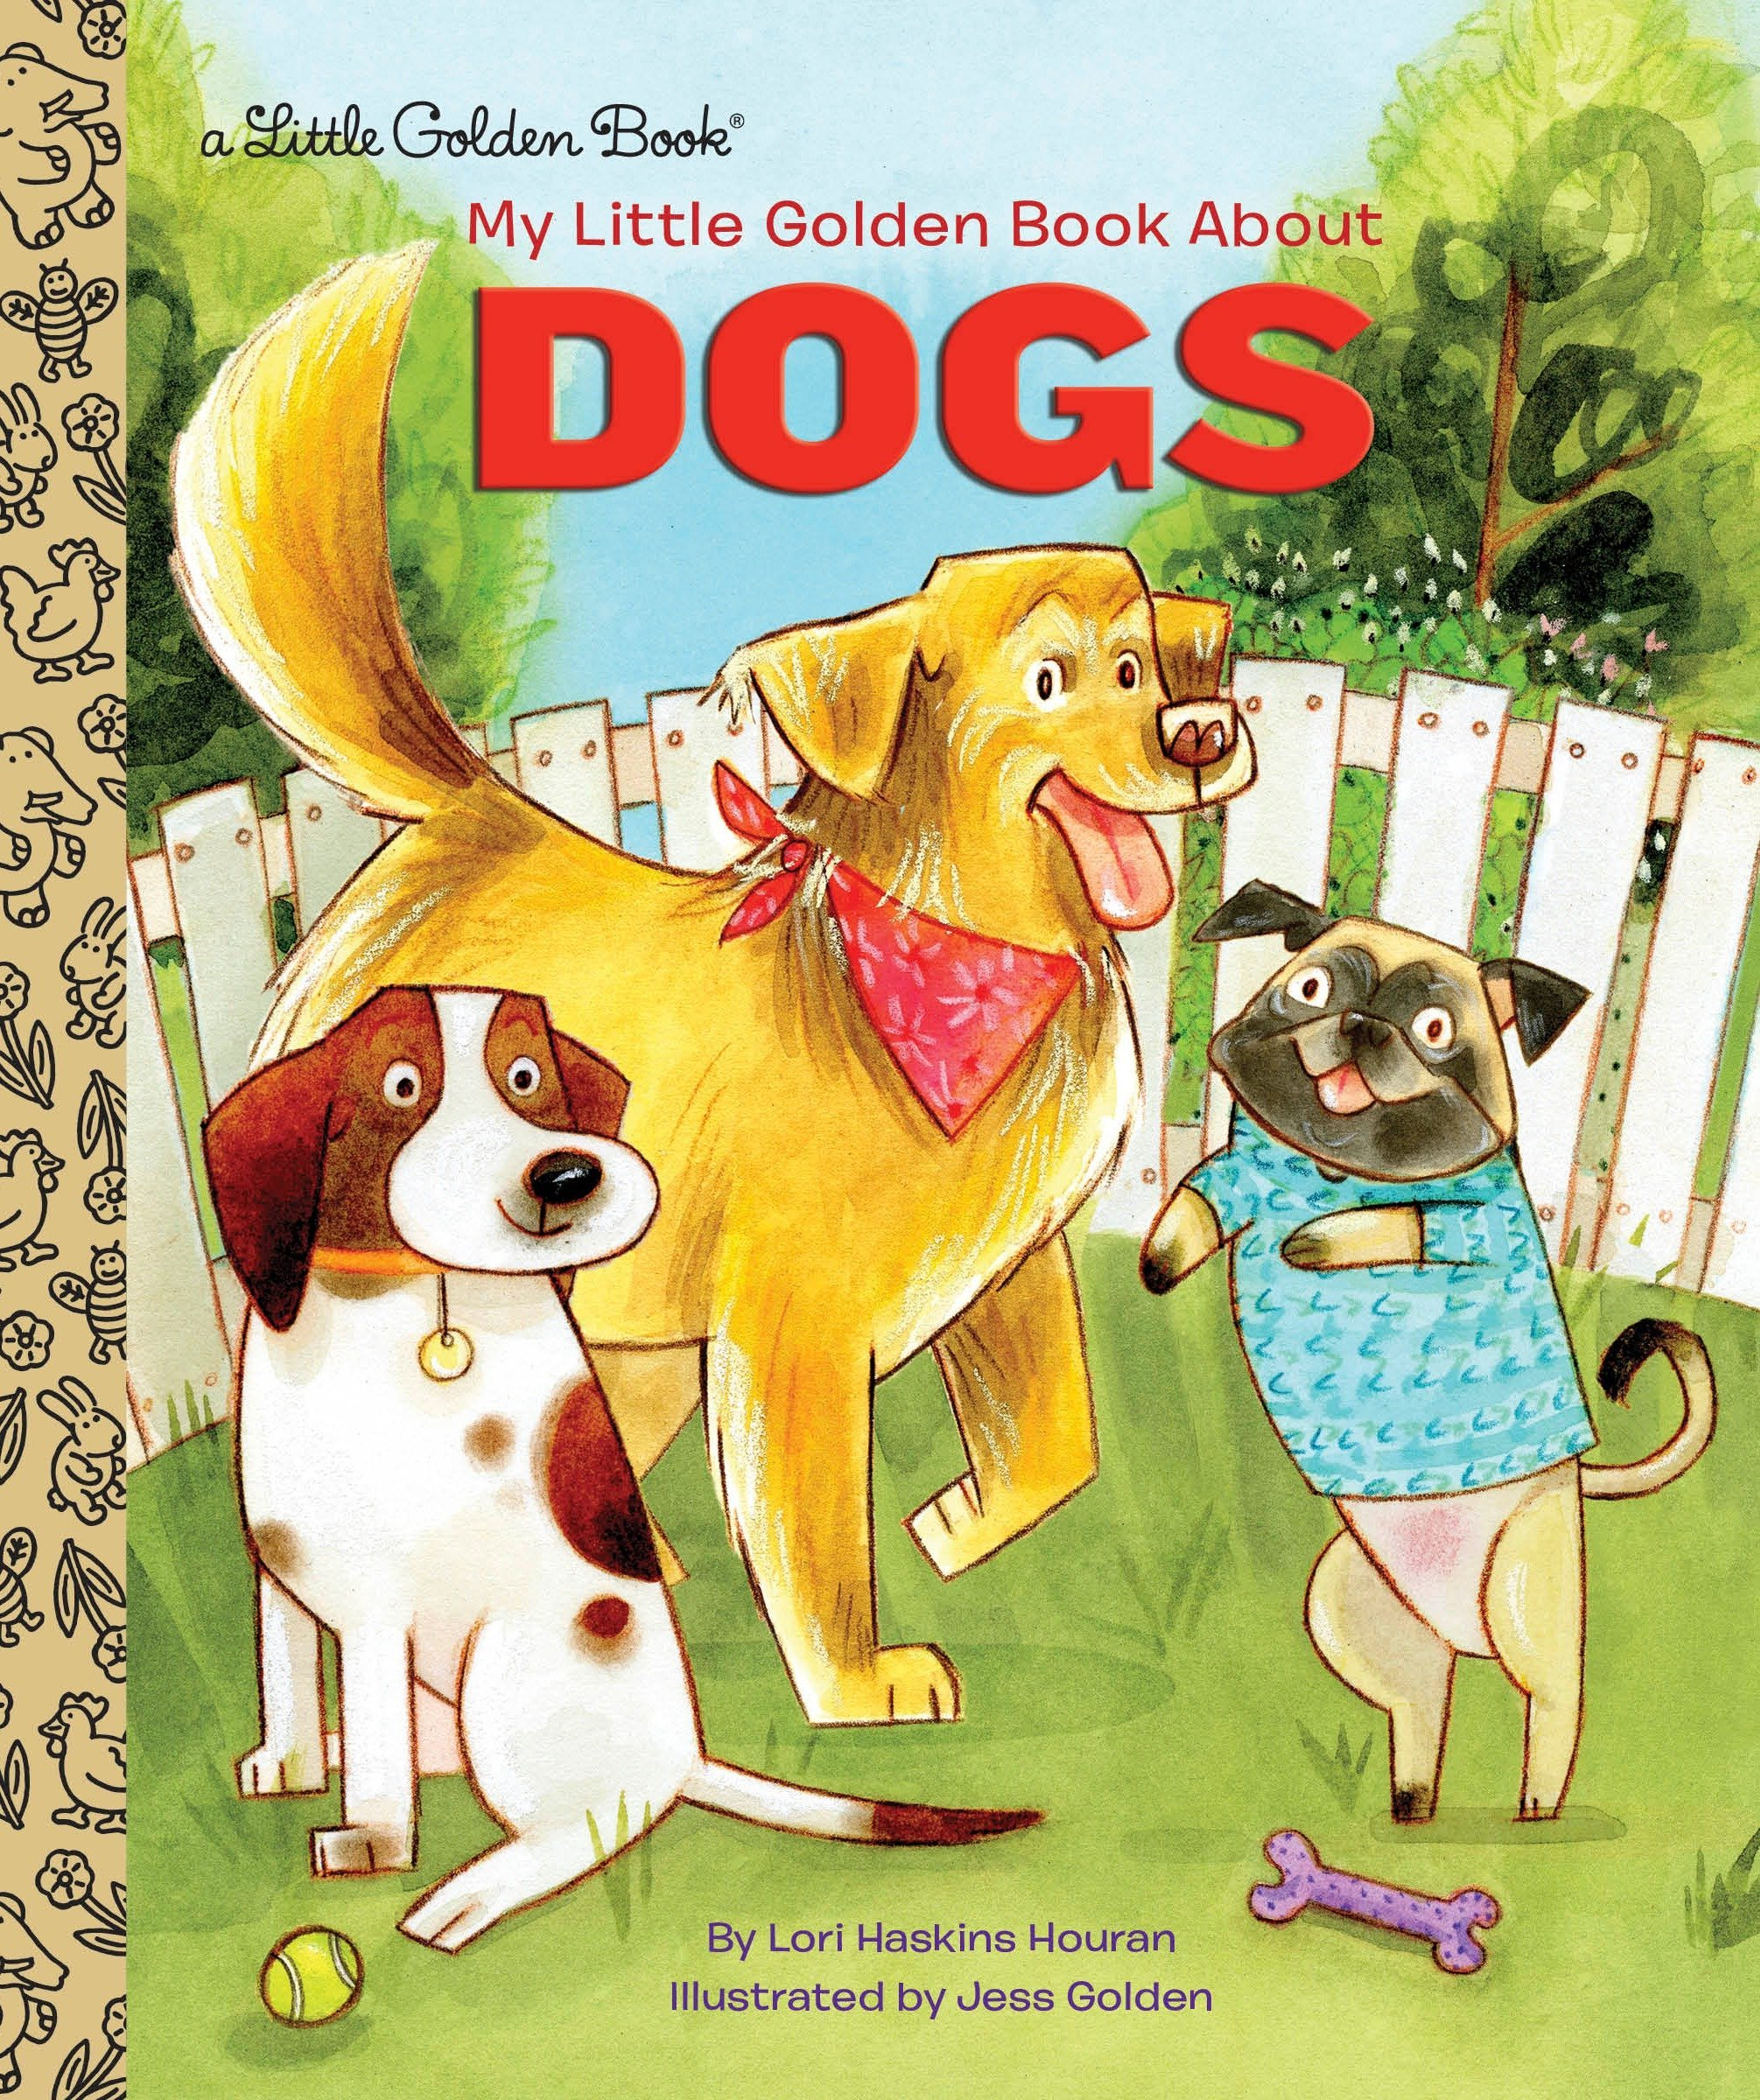 My Little Golden Book About Dogs PDF